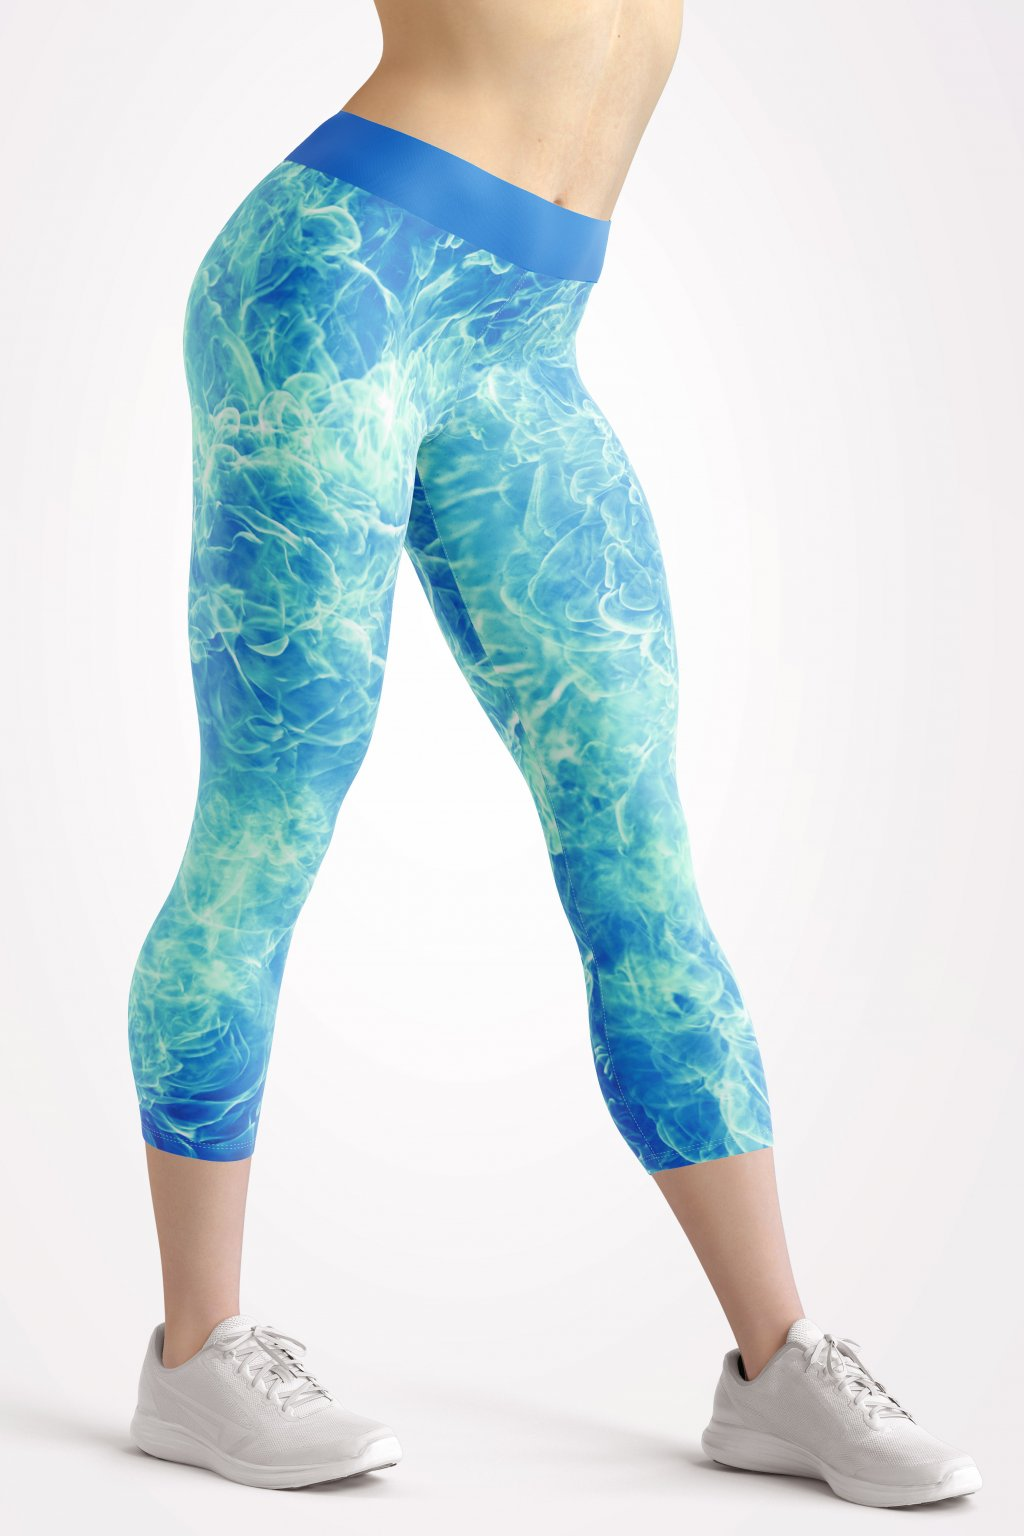 blue flames 3 4 leggings front by utopy